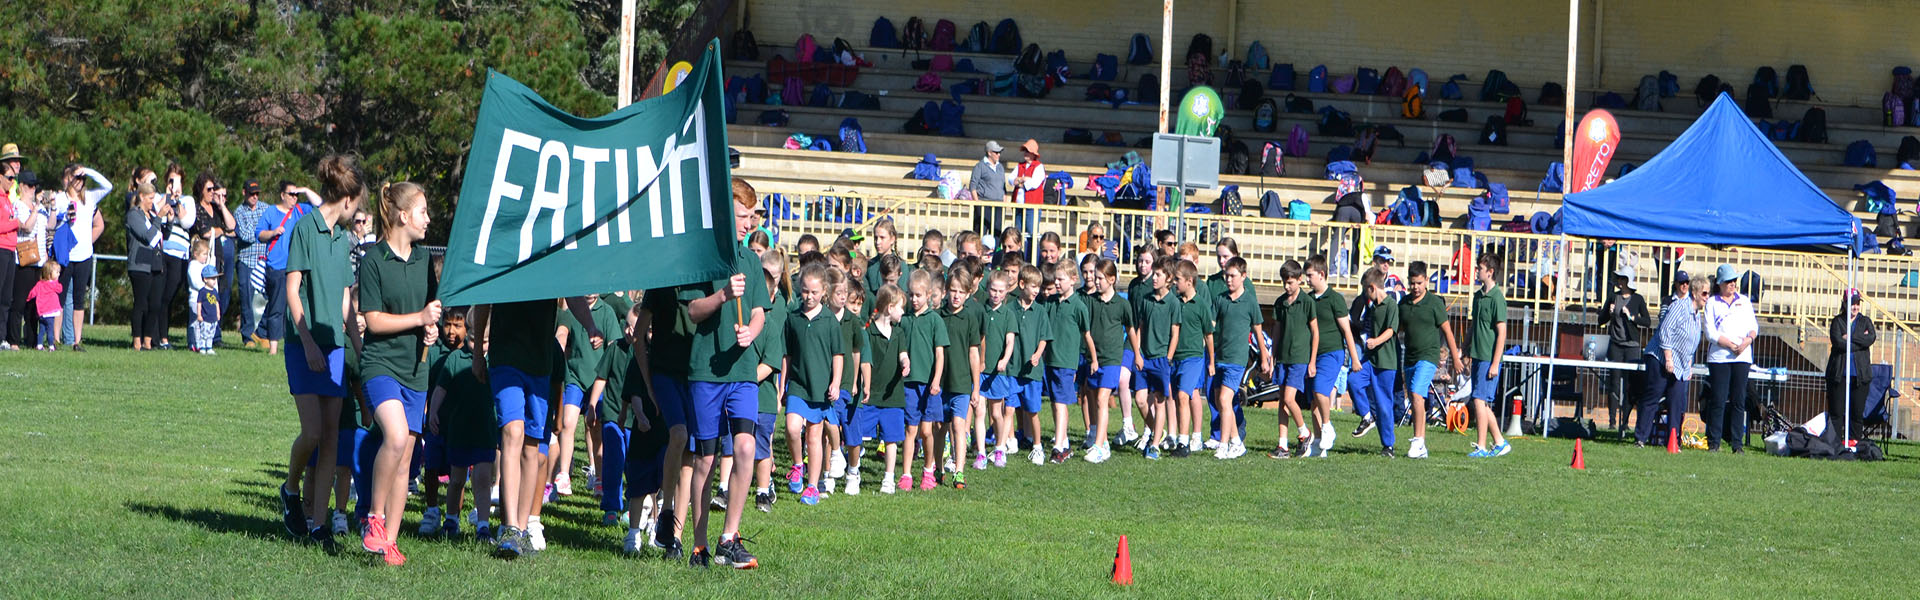 athletics carnival 2017 014.jpg